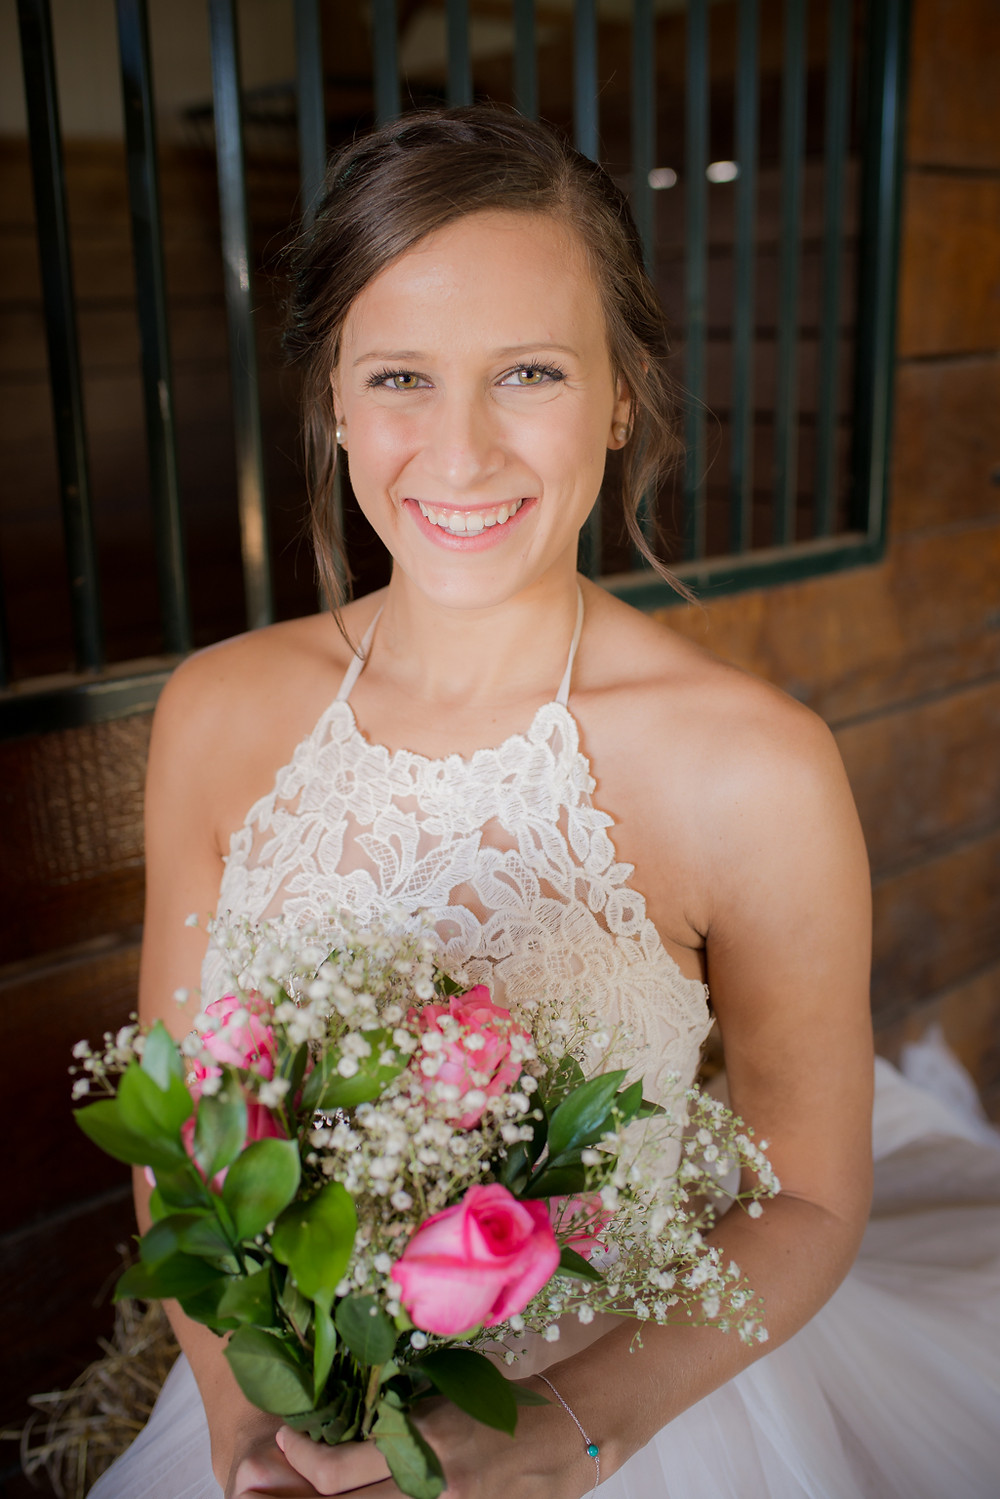 Jacqueline Binkley Photography - The Barns at Maple Valley Farm LLC WV